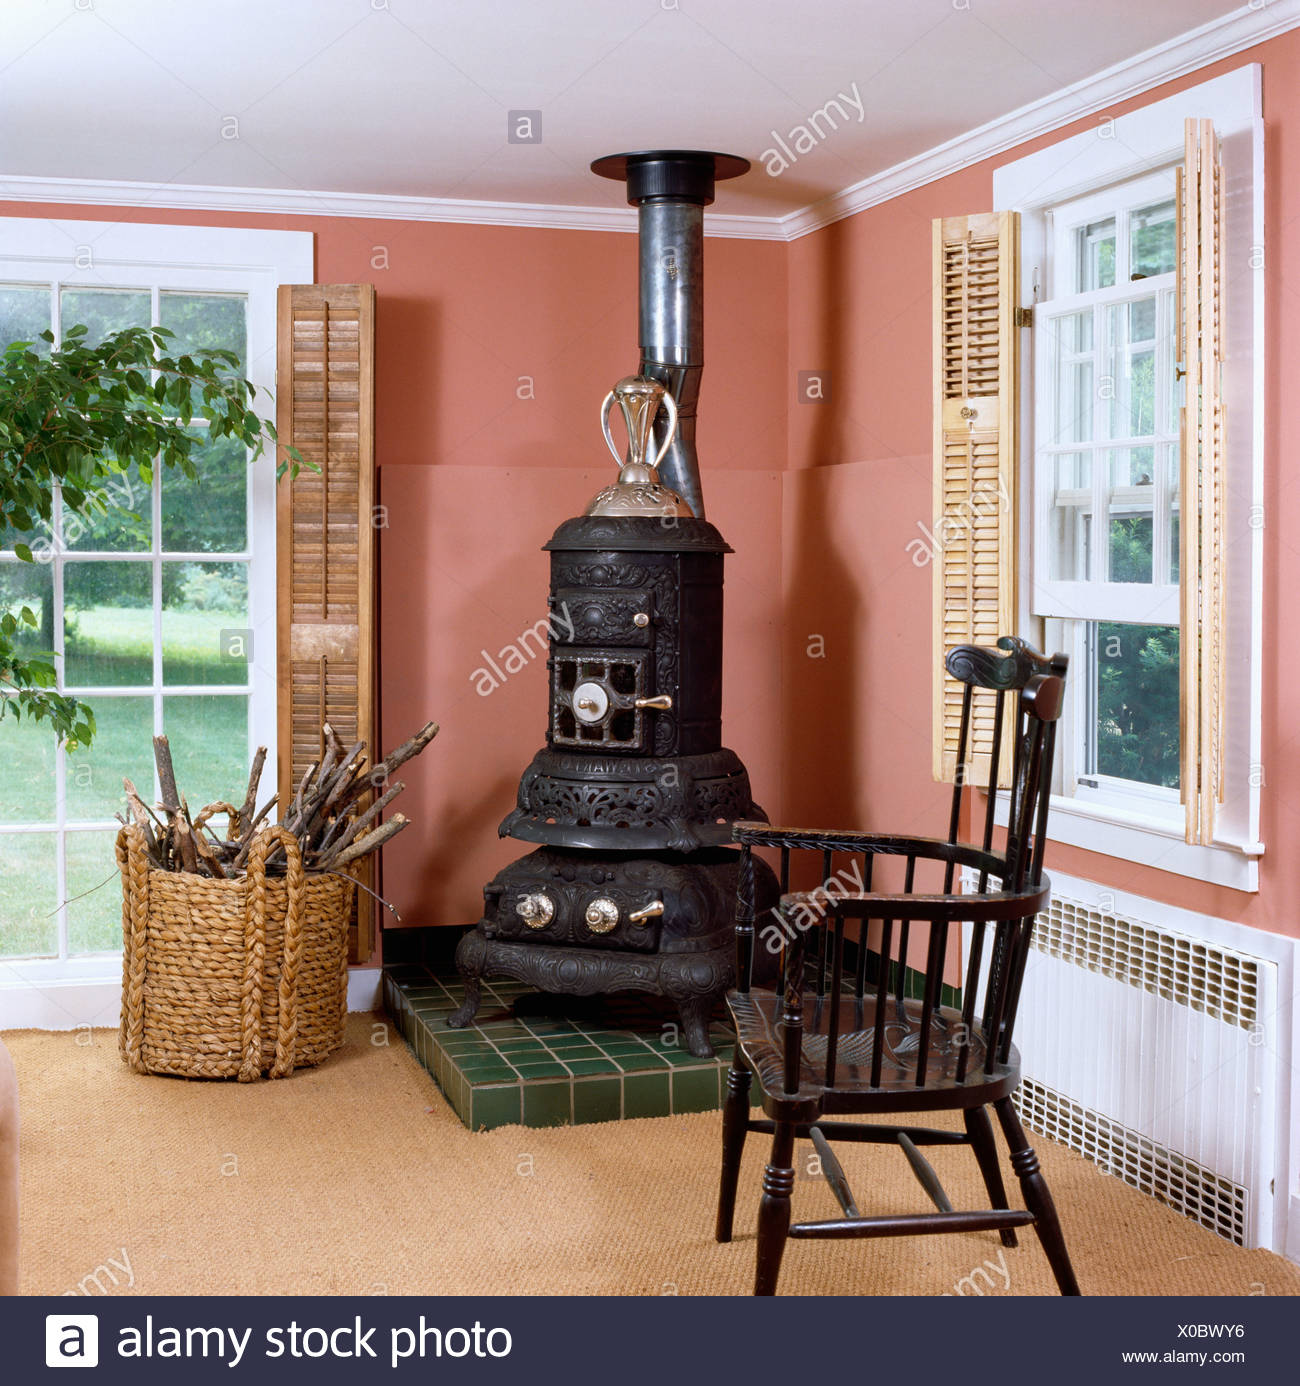 Large Black Stove In The Corner Of Pink Livingroom With